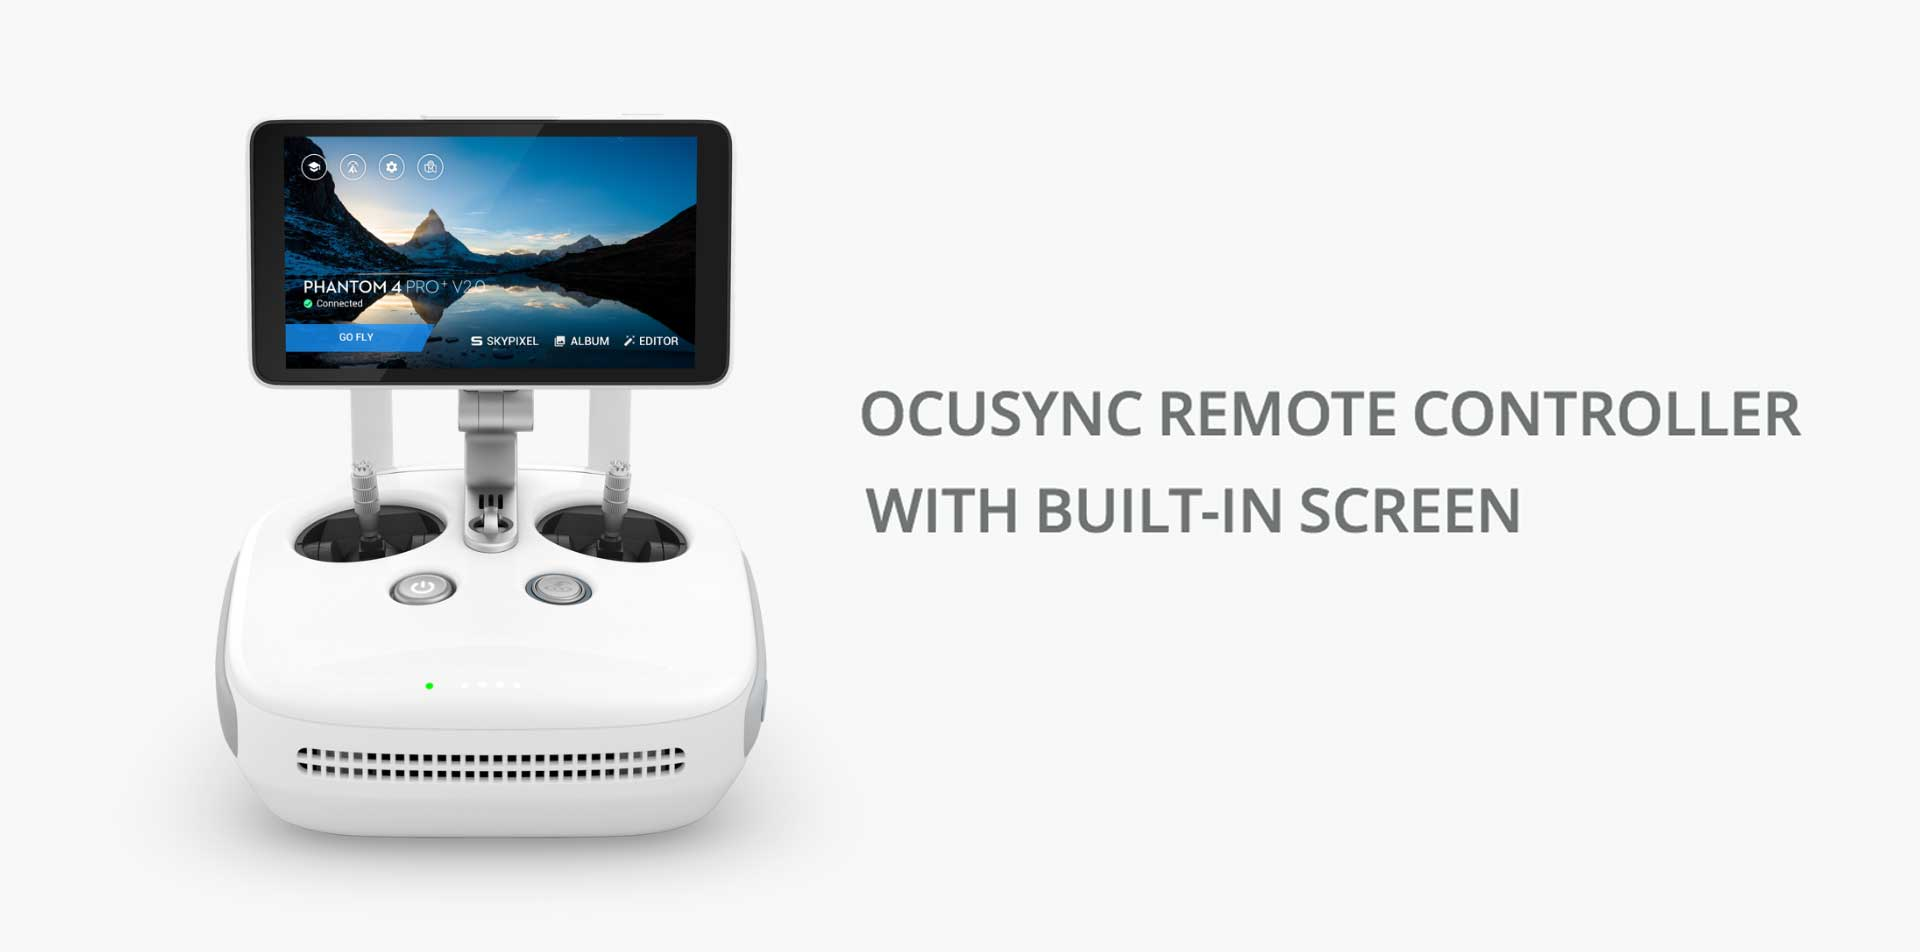 DJI Phantom 4 Pro V2.0 OCUSYNC REMOTE CONTROLLER WITH BUILT-IN SCREEN